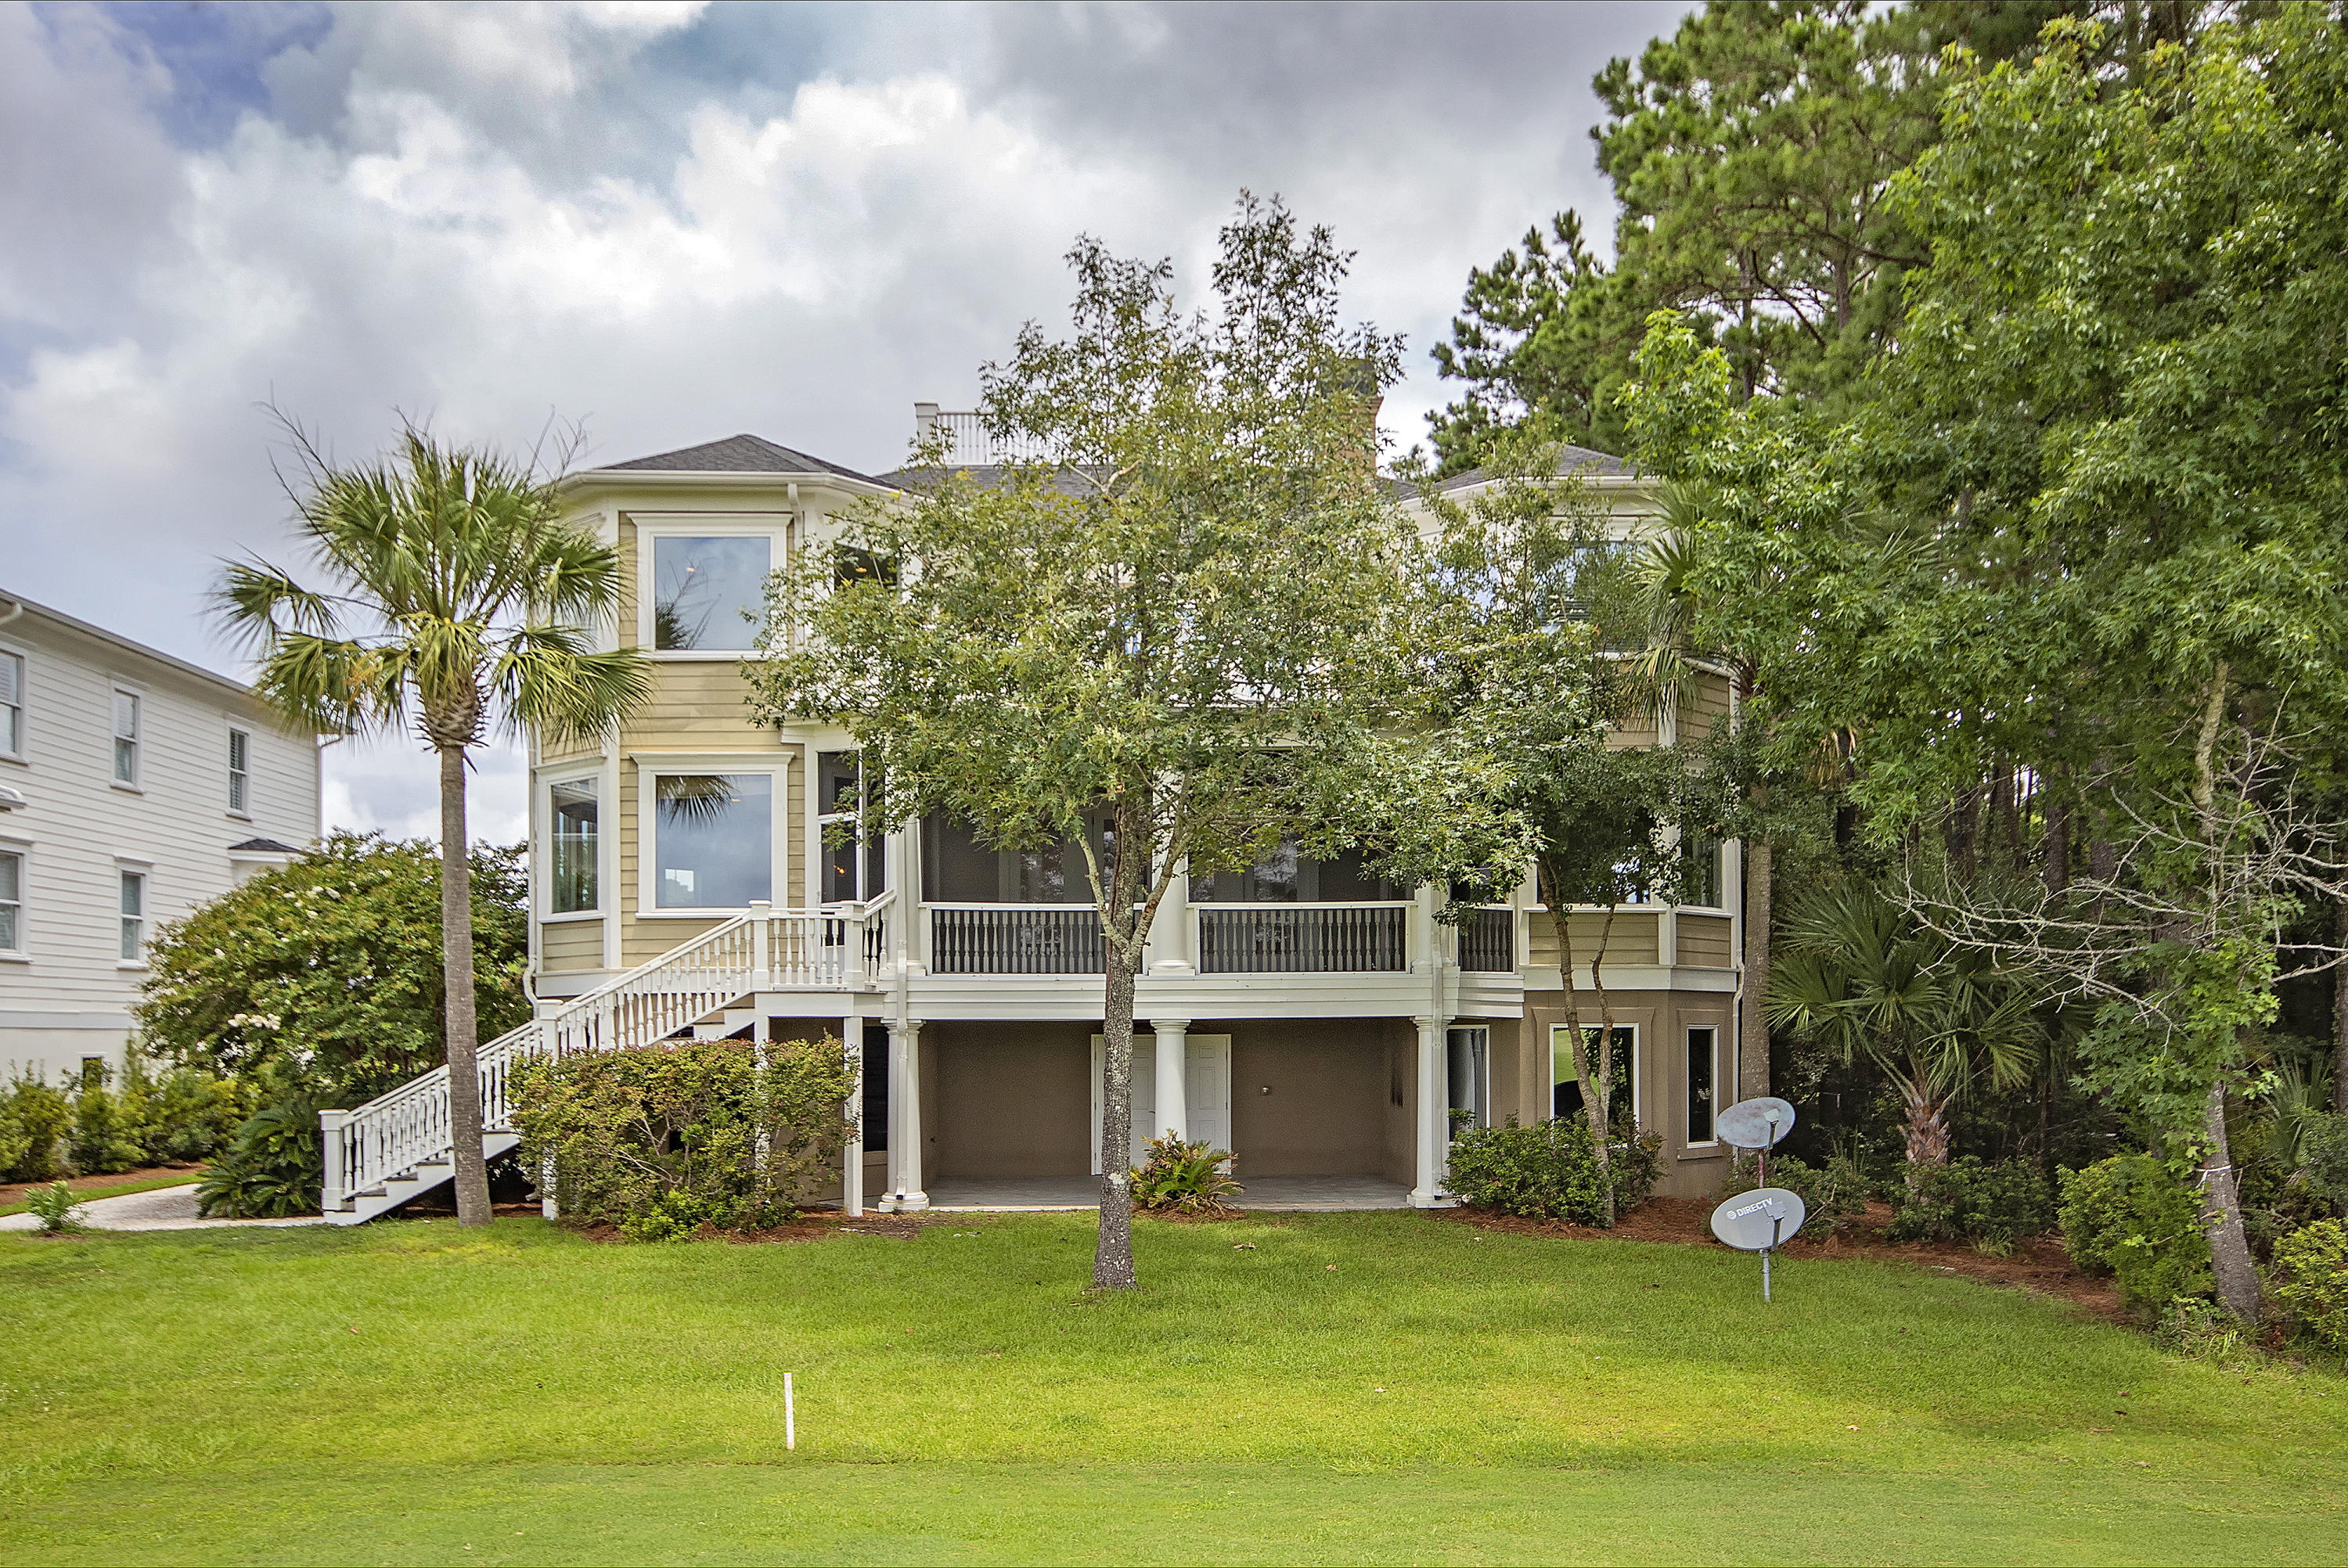 Rivertowne Country Club Homes For Sale - 1632 Rivertowne Country Club, Mount Pleasant, SC - 21